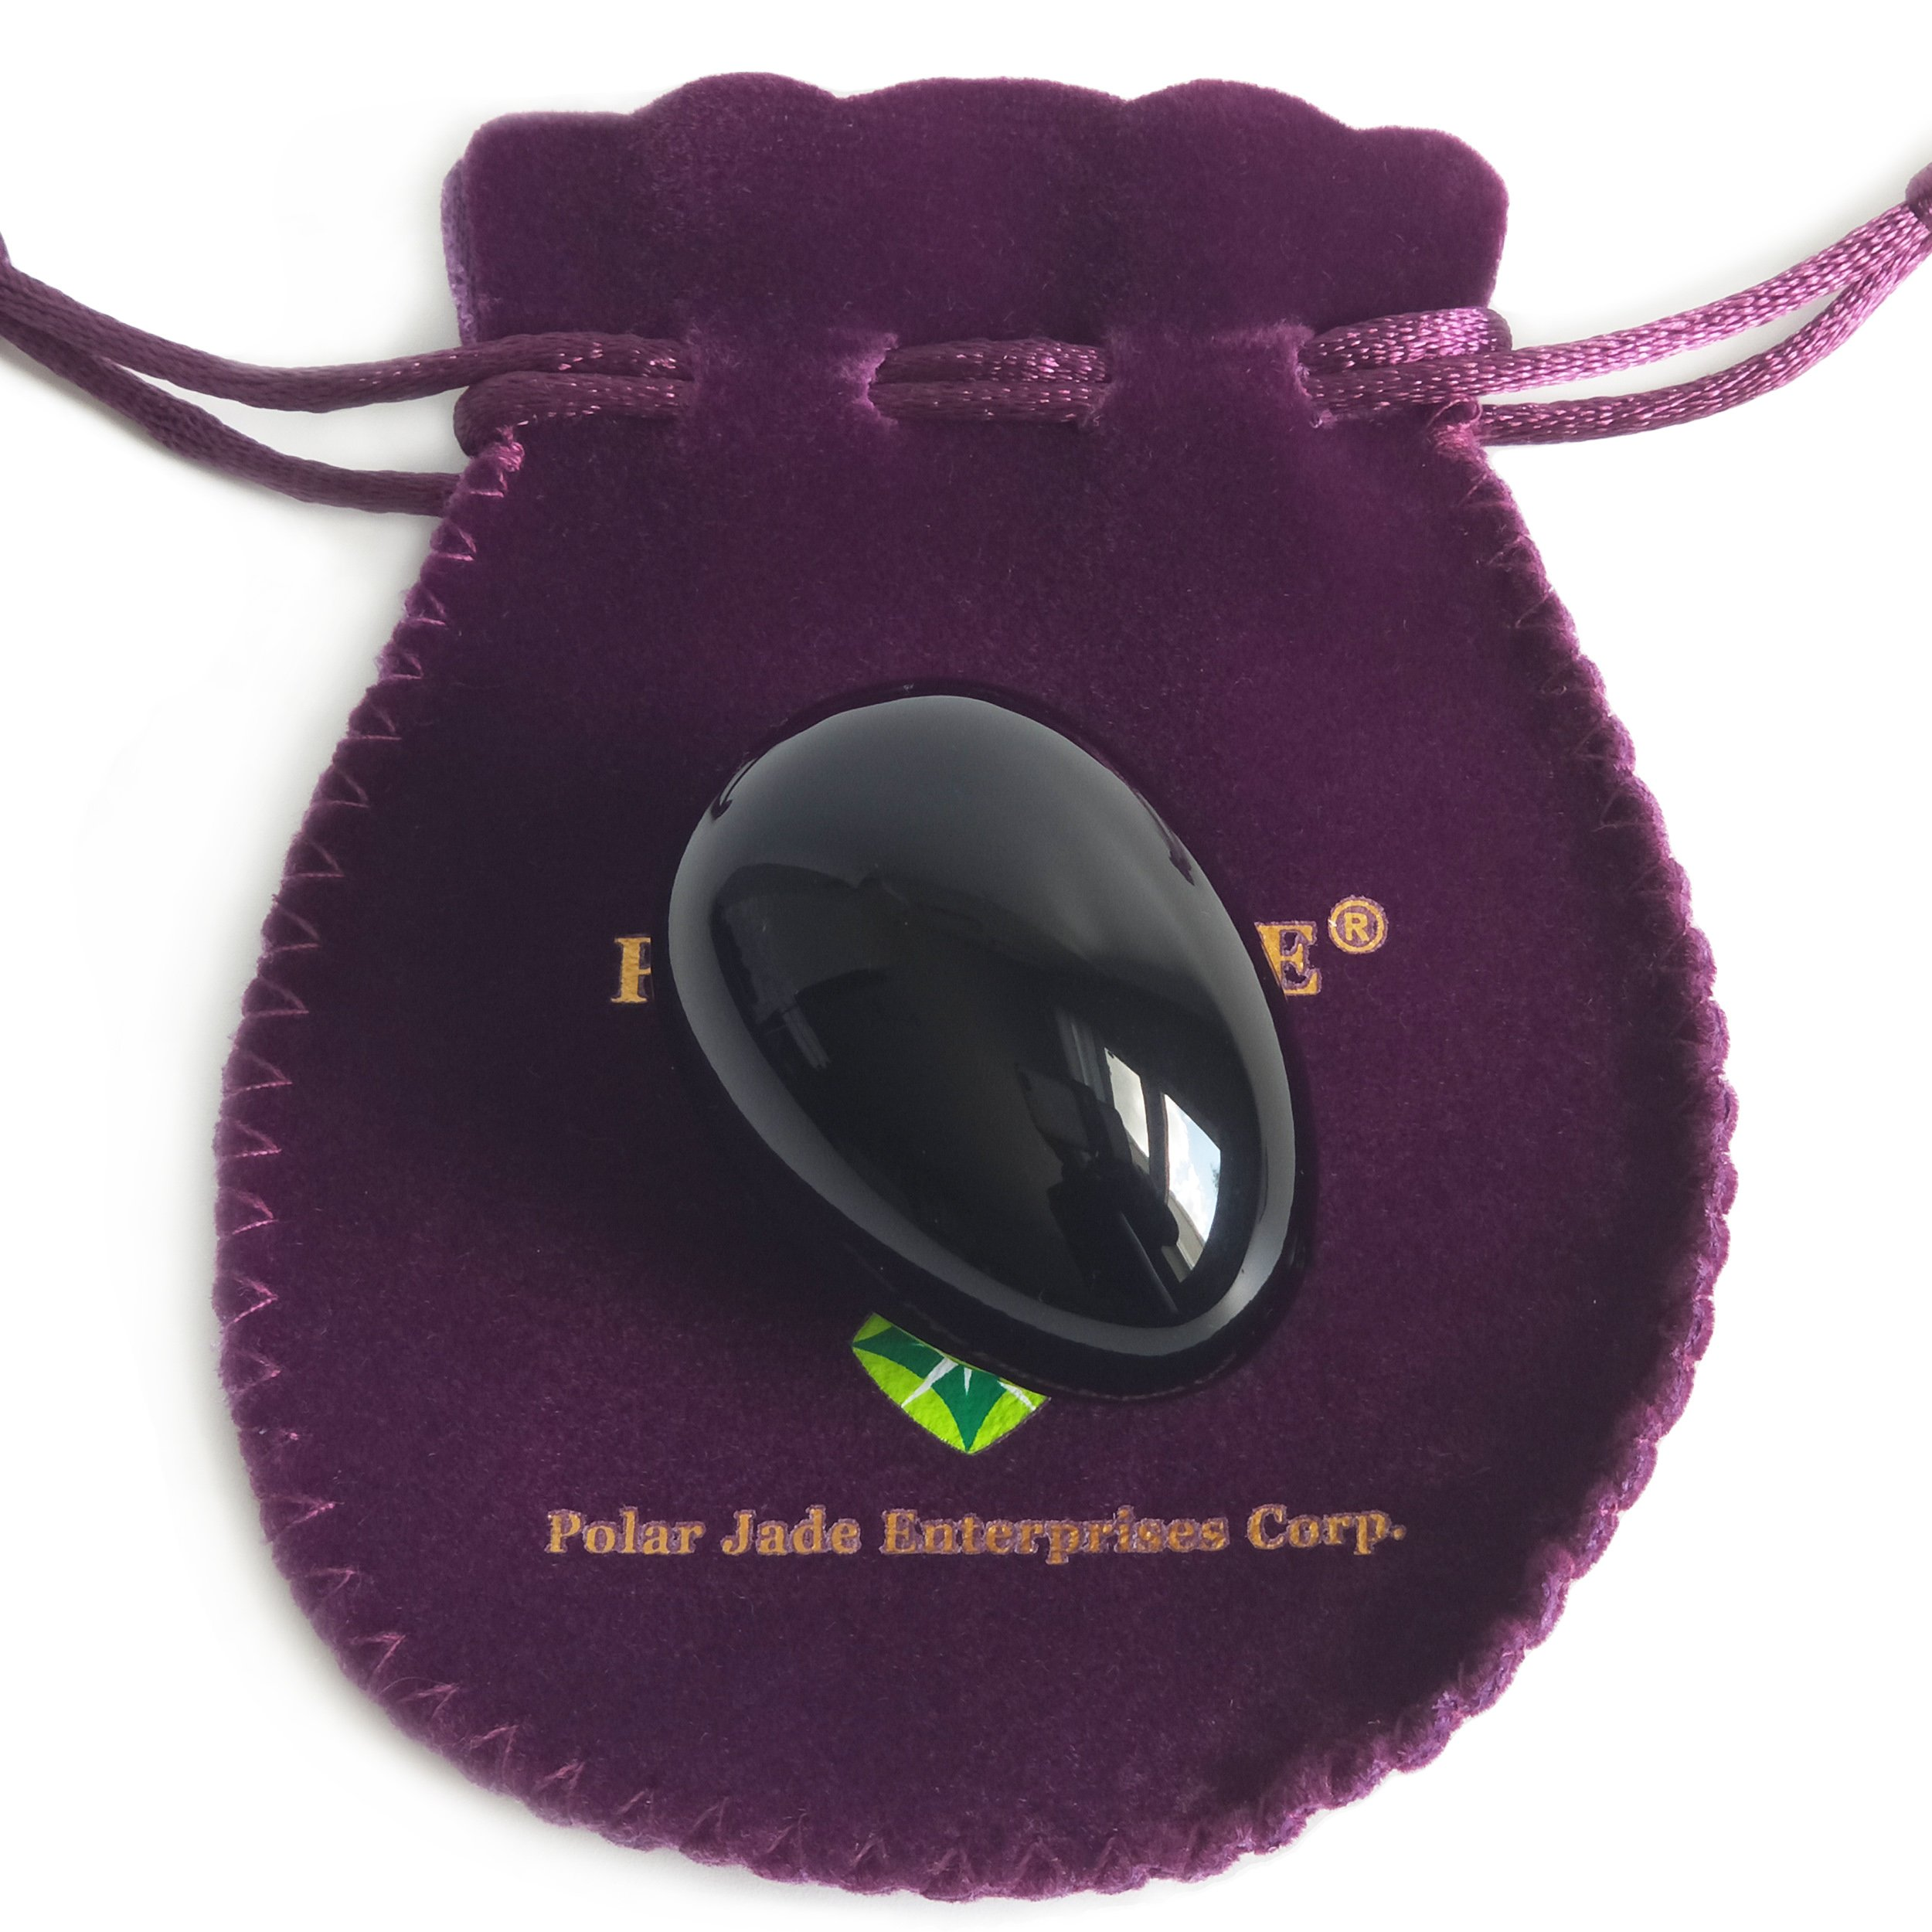 Yoni Egg, Undrilled, Made of Obsidian Gemstone (Kegel Jade Egg), Medium Size (43x30mm), With Certification of Authenticity and Jewelry Pouch, For Exercise or Decoration by Polar Jade